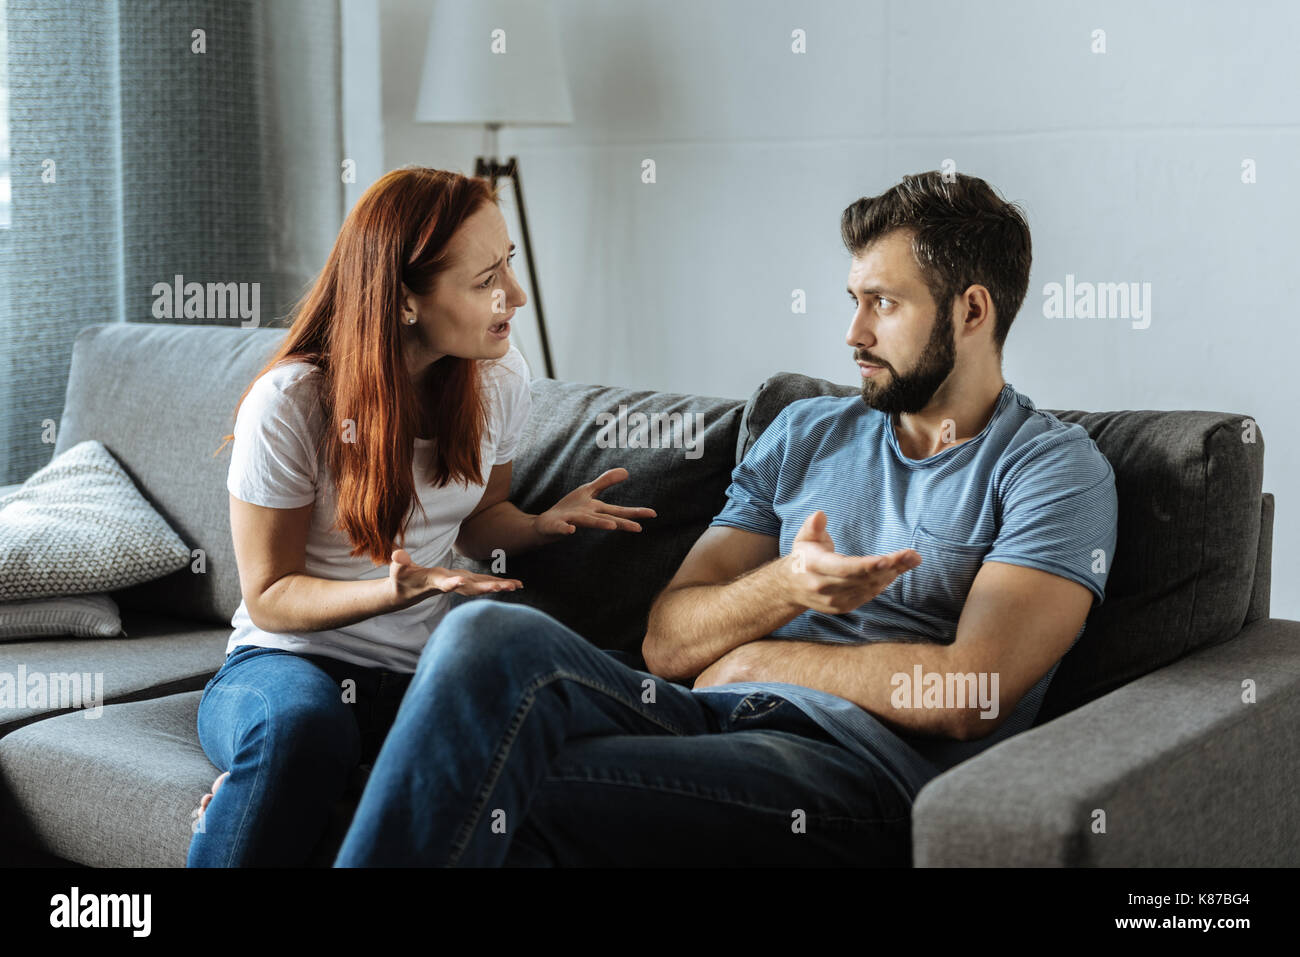 Unhappy emotional woman shouting at her boyfriend - Stock Image